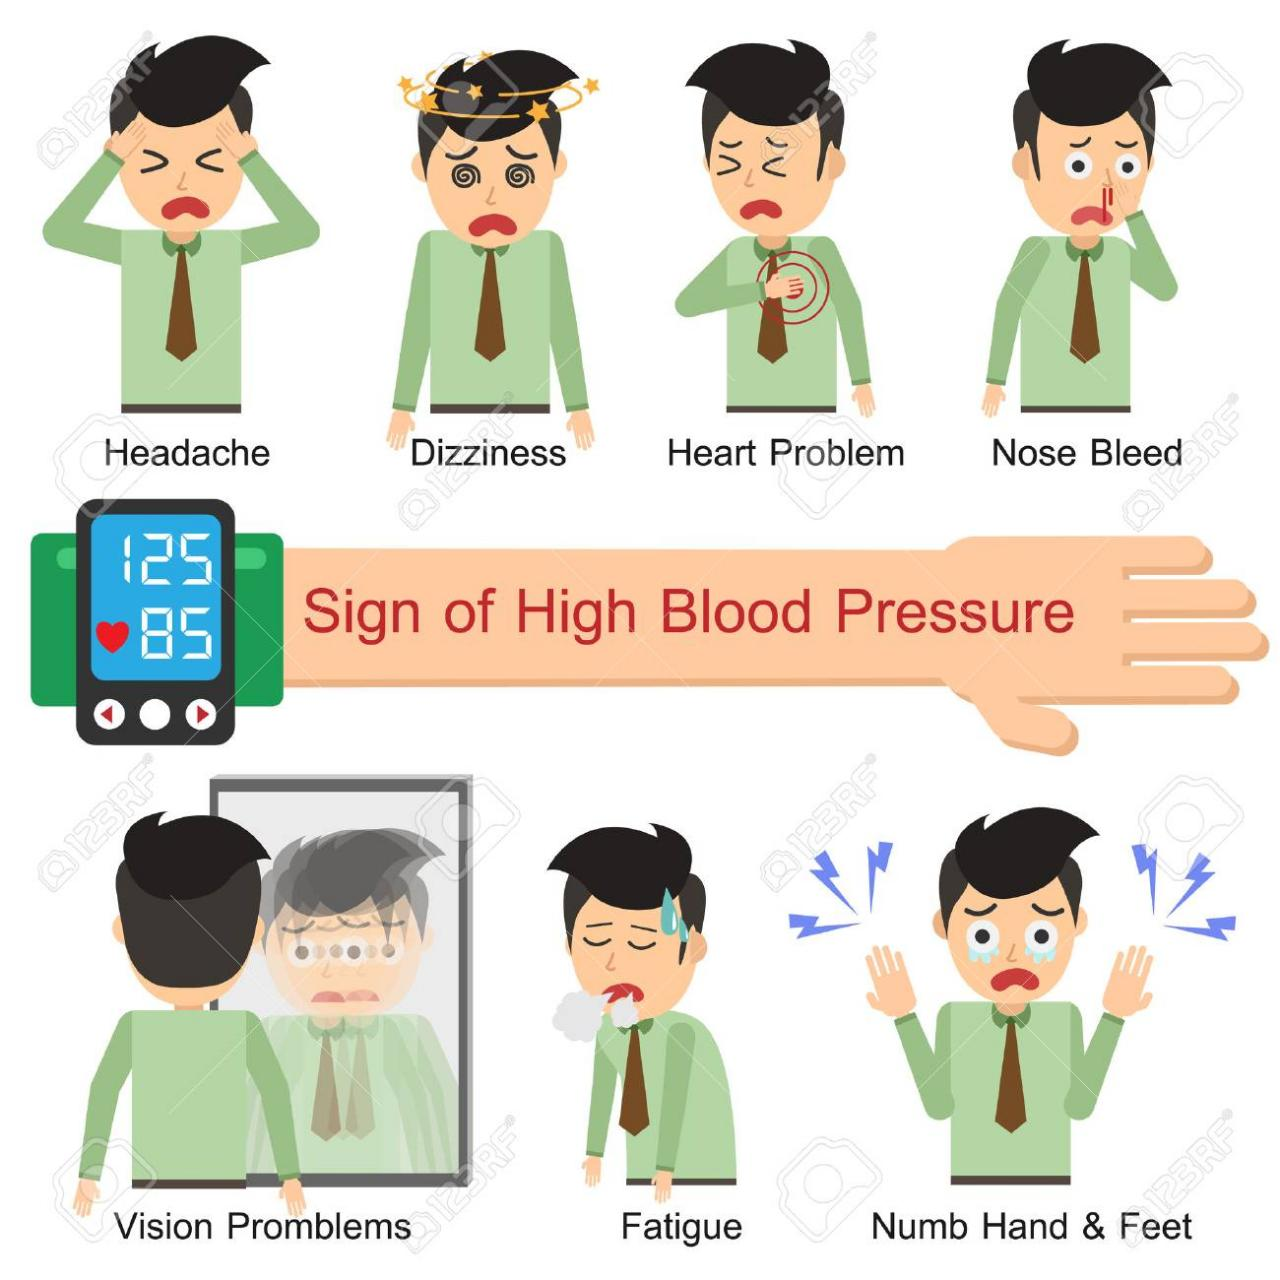 Complications of hypertension - Wikipedia